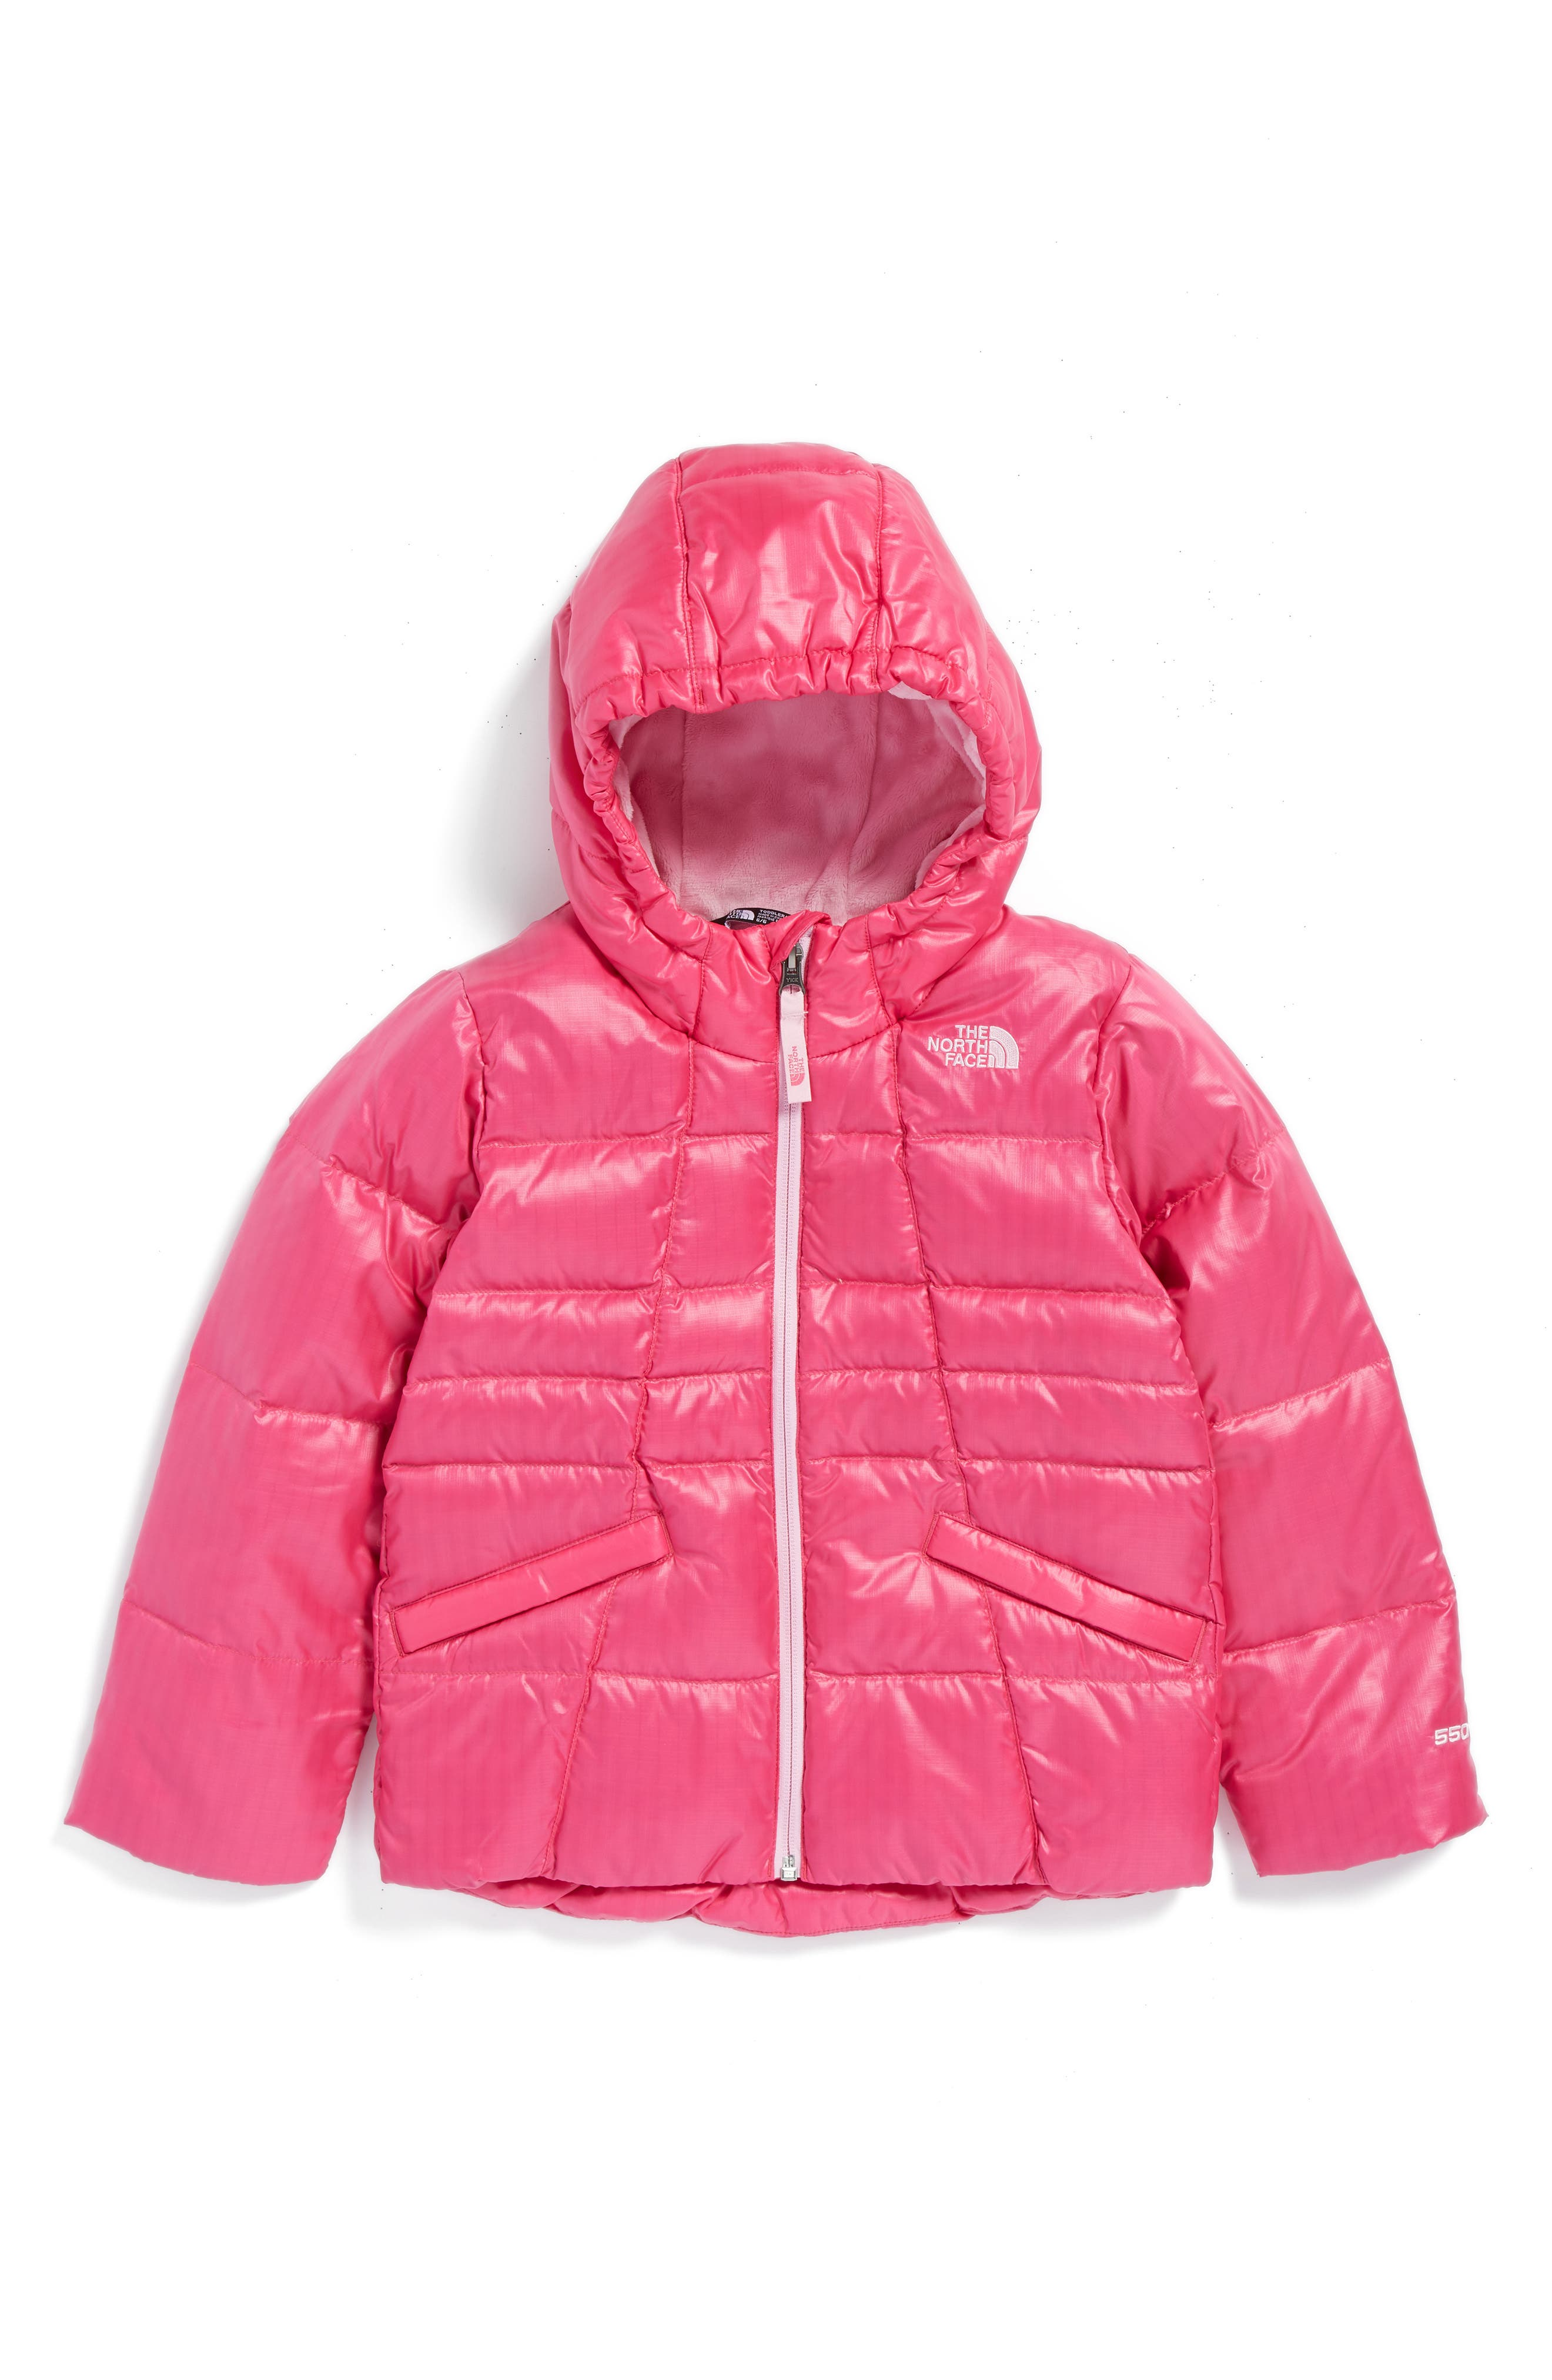 Alternate Image 1 Selected - The North Face Moondoggy 2.0 Water Repellent Jacket (Toddler Girls)